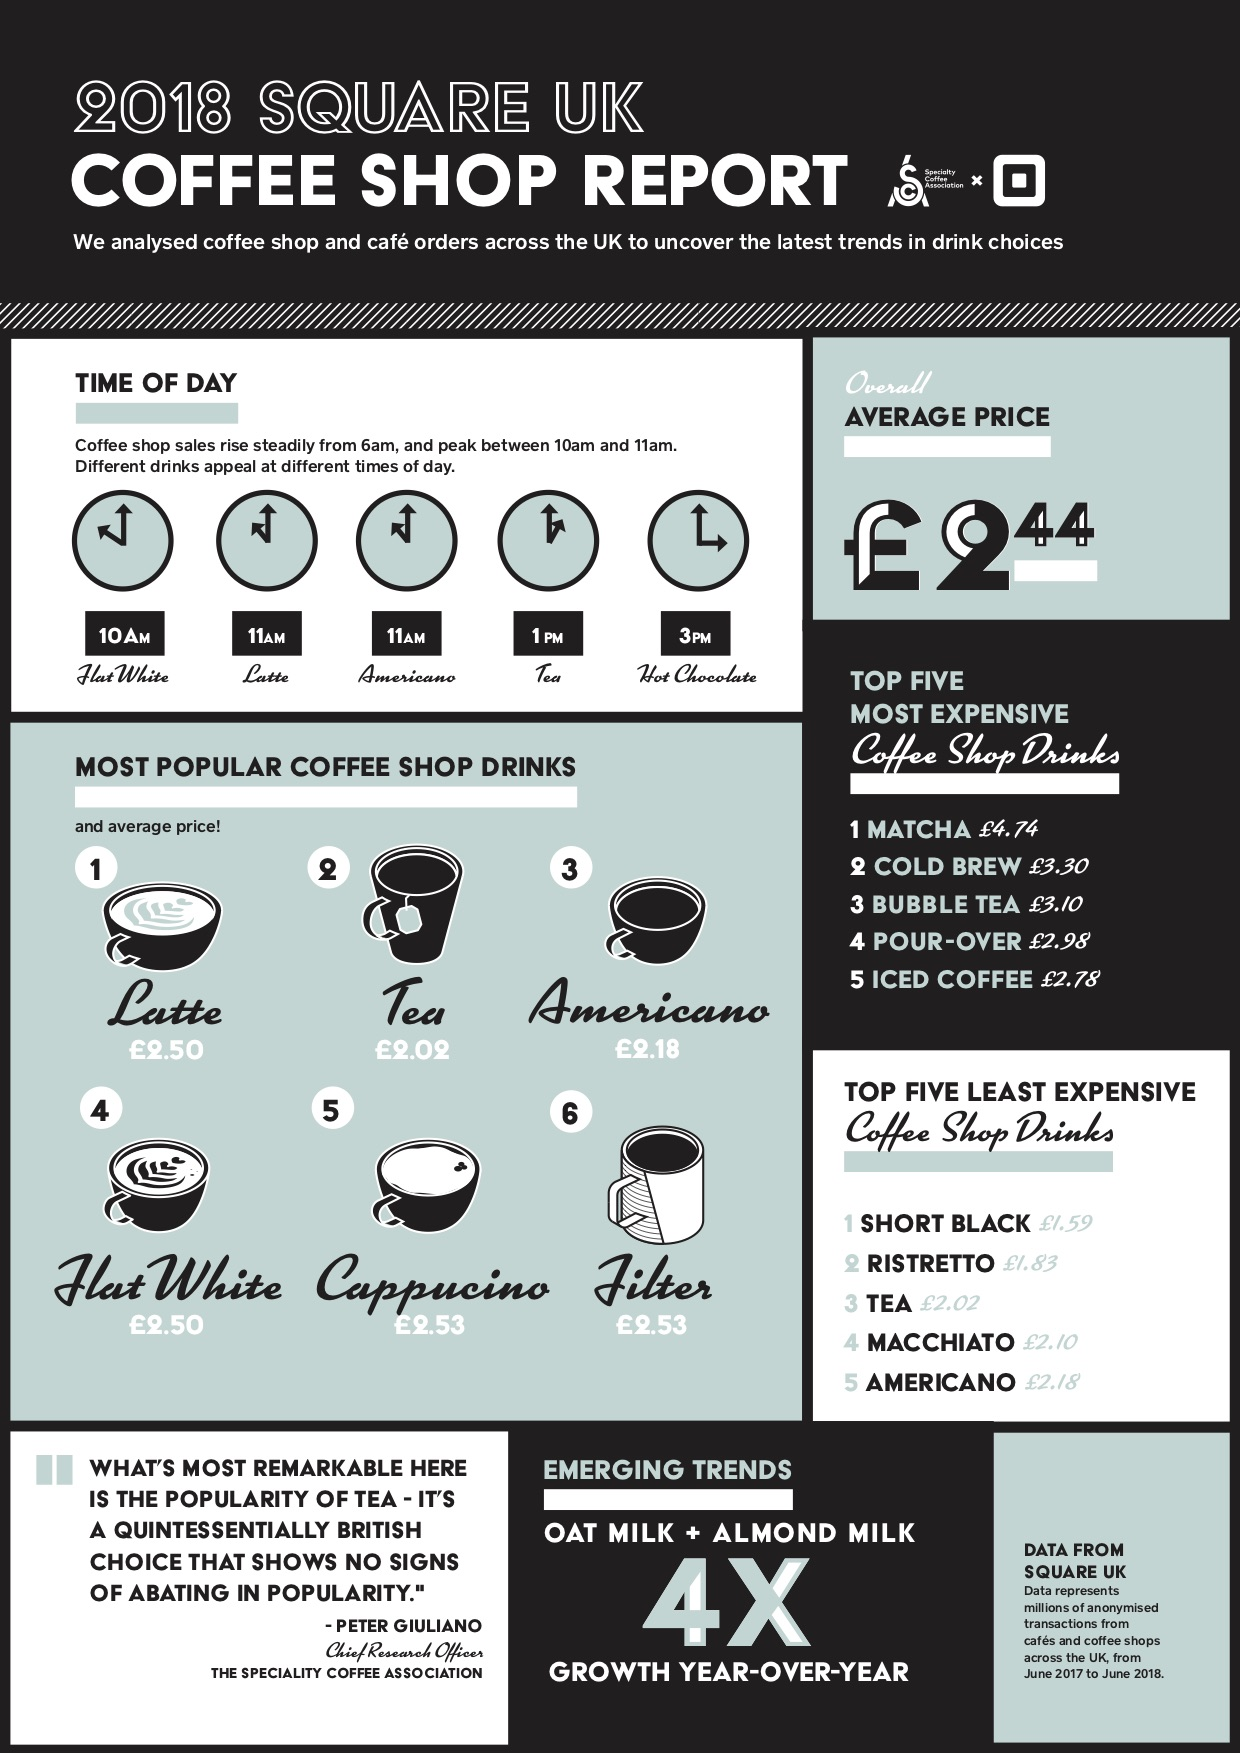 UK coffee shop report 2018 infographic